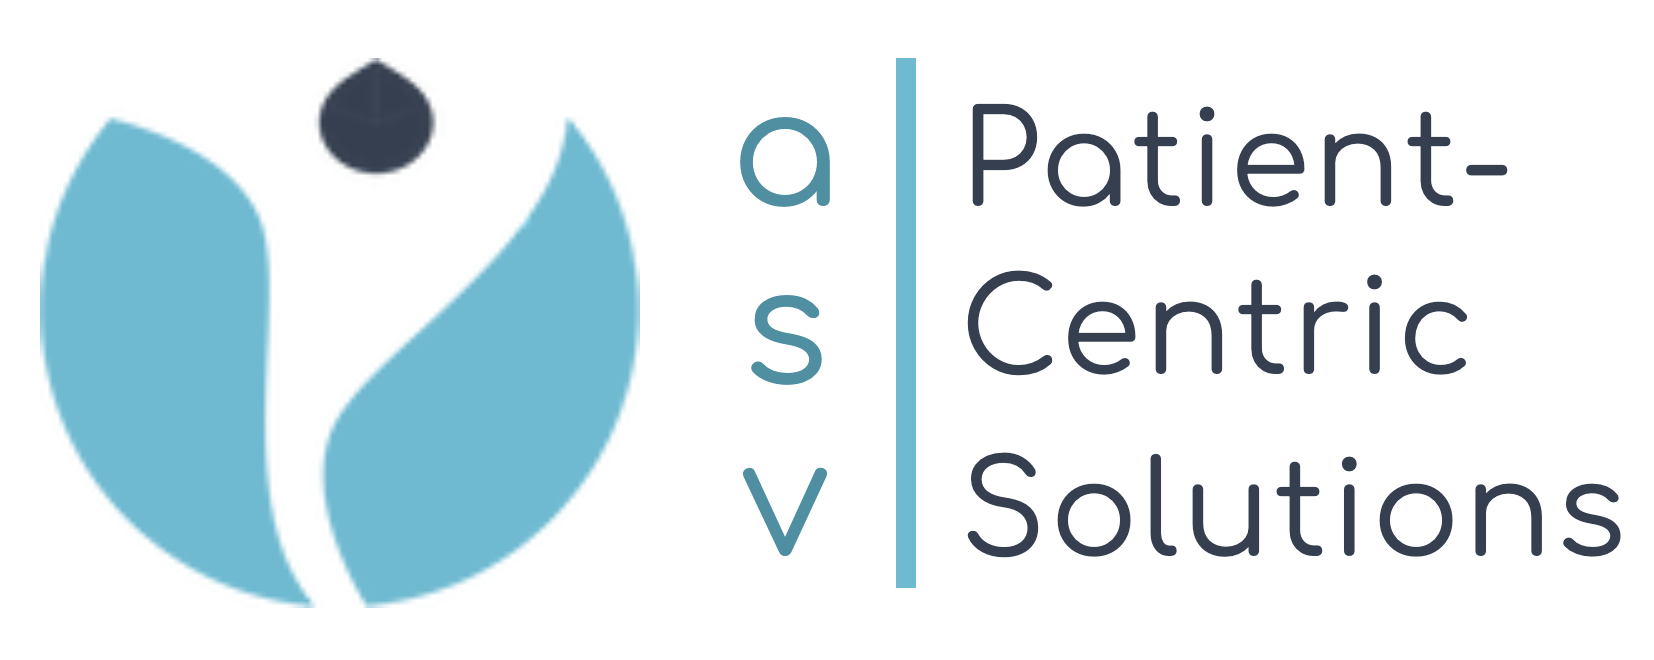 asv patientcentricsolutions